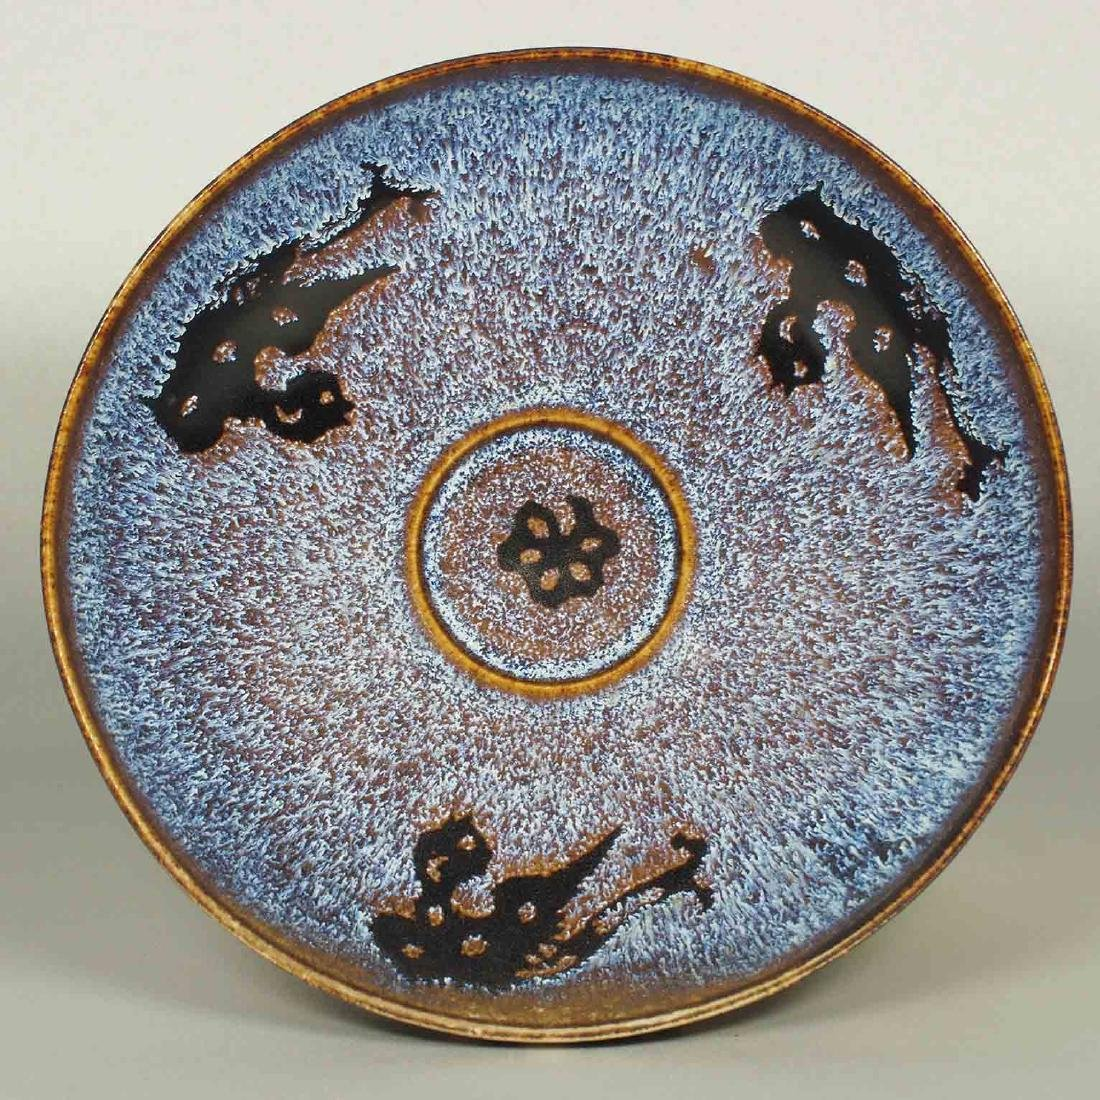 Jizhou Bowl with Paper-Cut Design, Song Dynasty